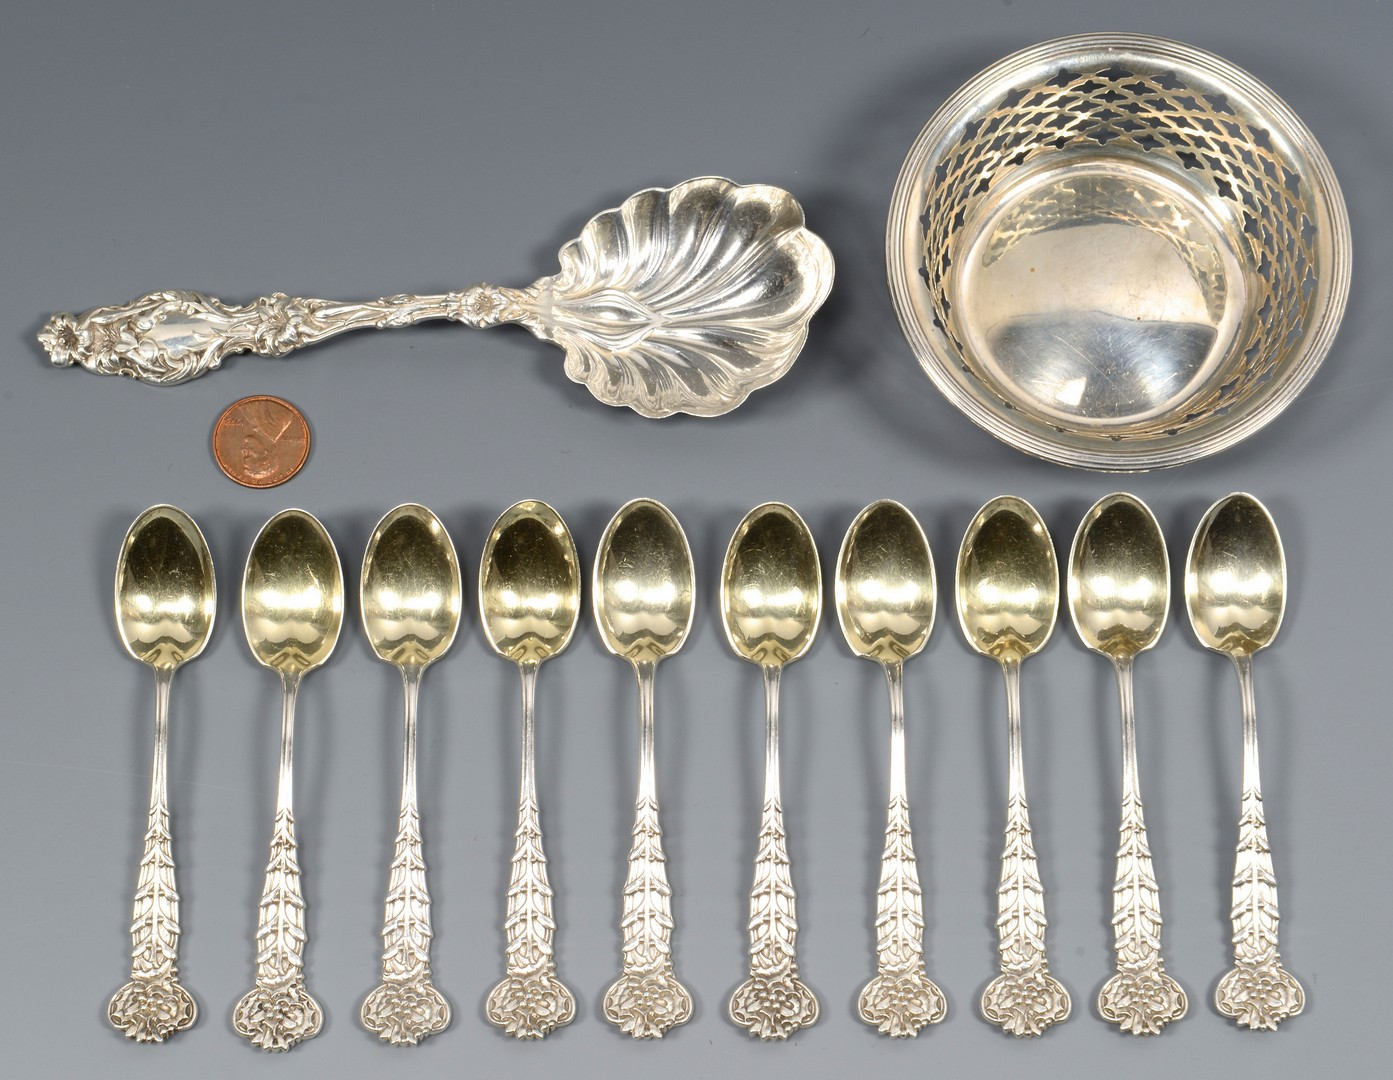 Lot 822: 10 Tiffany Demitasse Spoons, Holly, plus 2 pcs